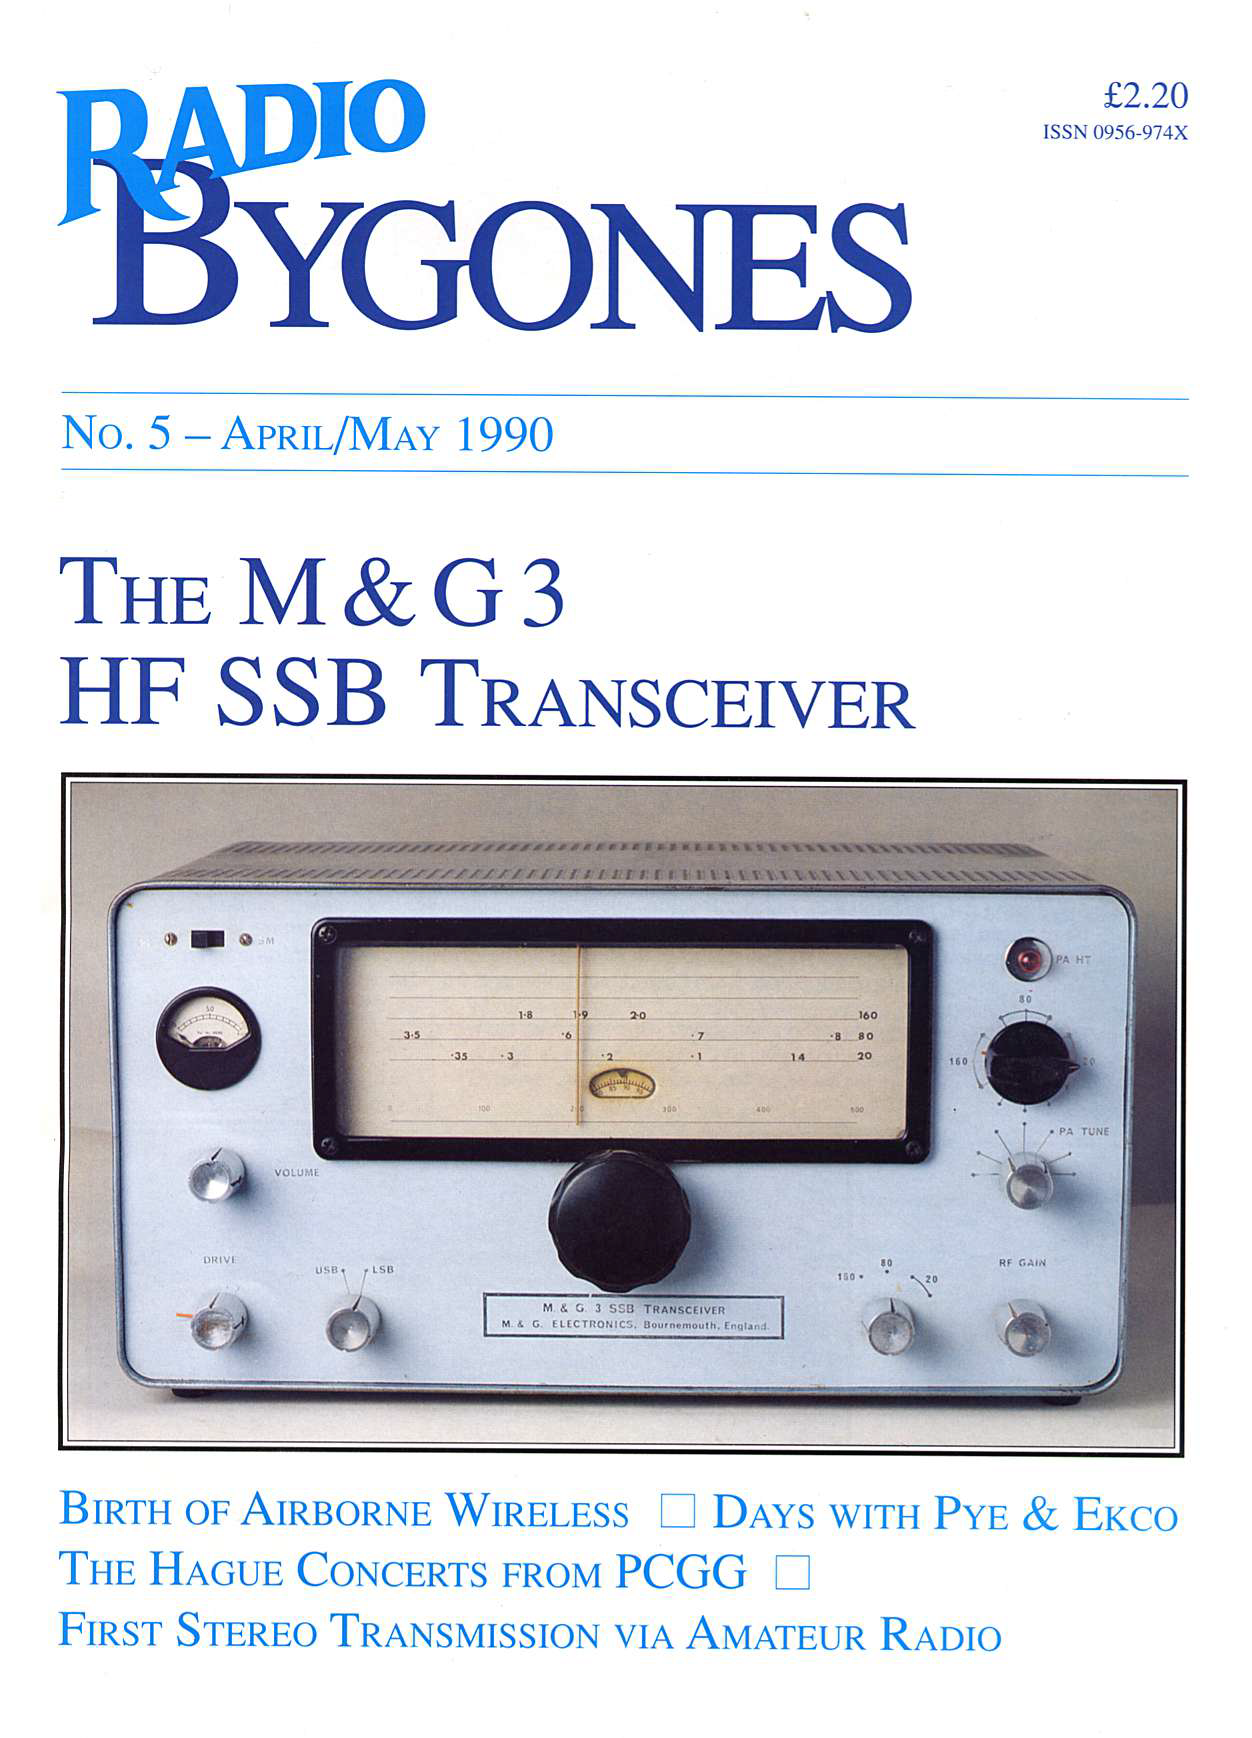 Radio Bygones Issue 5 - PDF